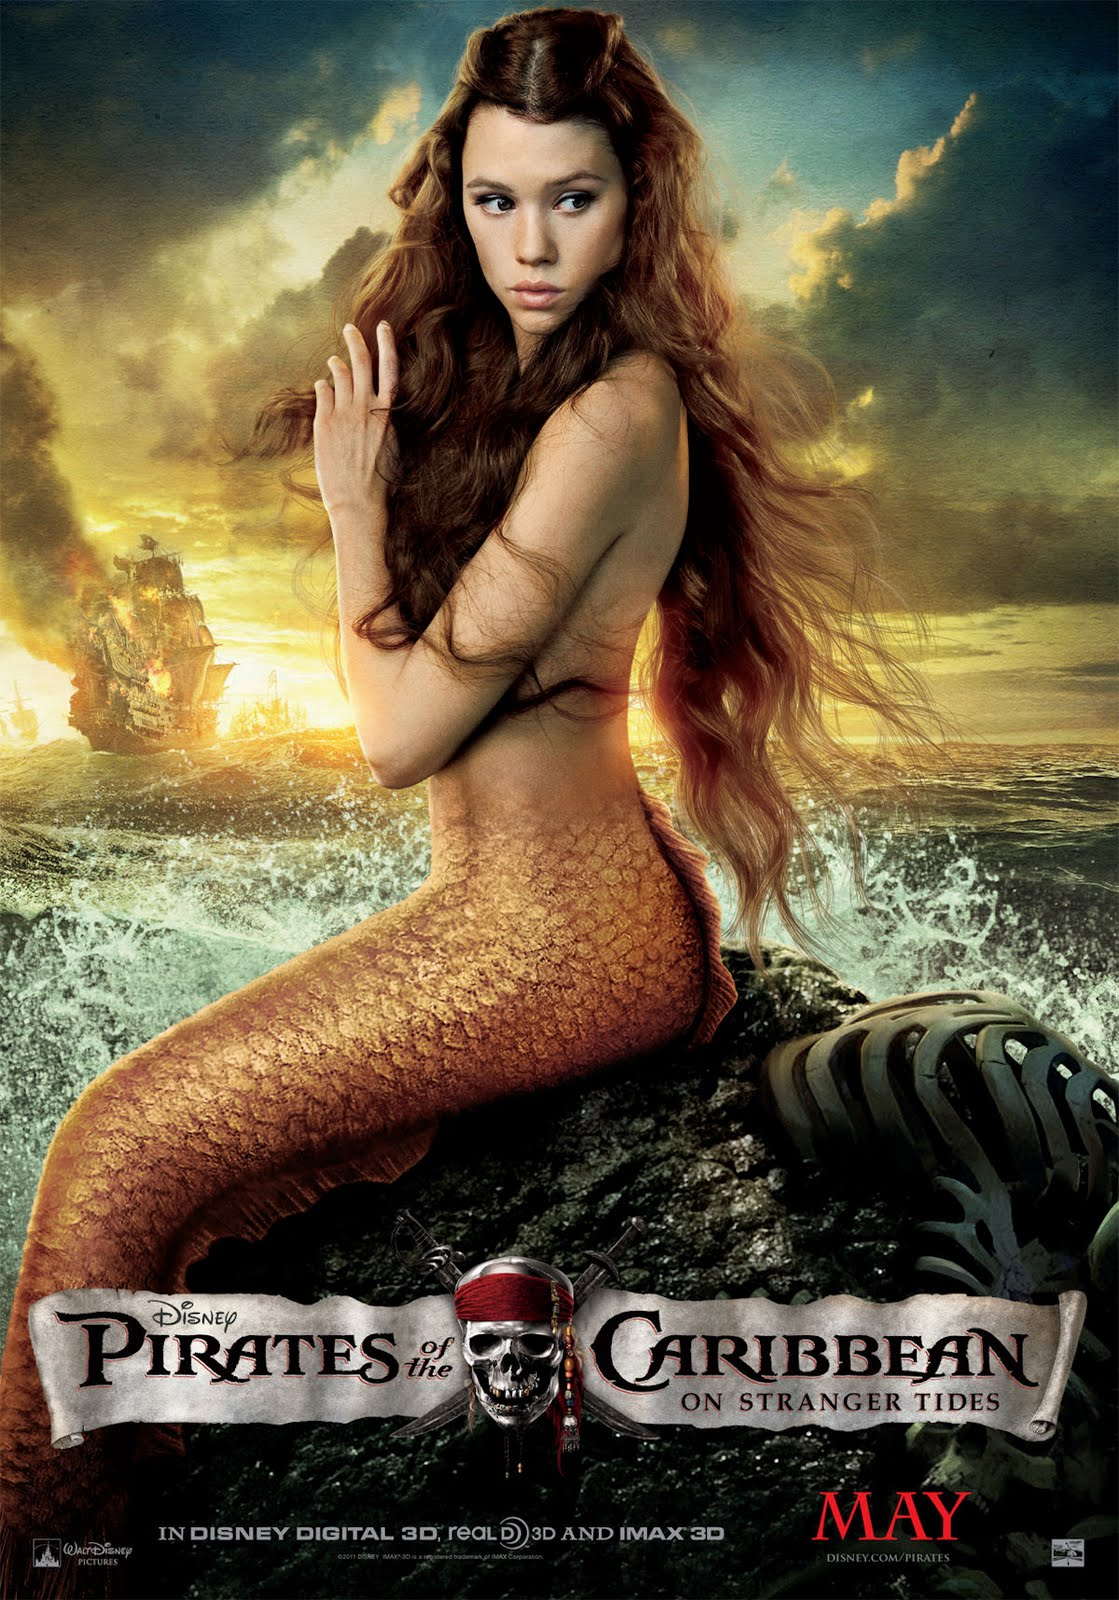 NEW Pirates of the Caribbean Mermaid Posters!!!